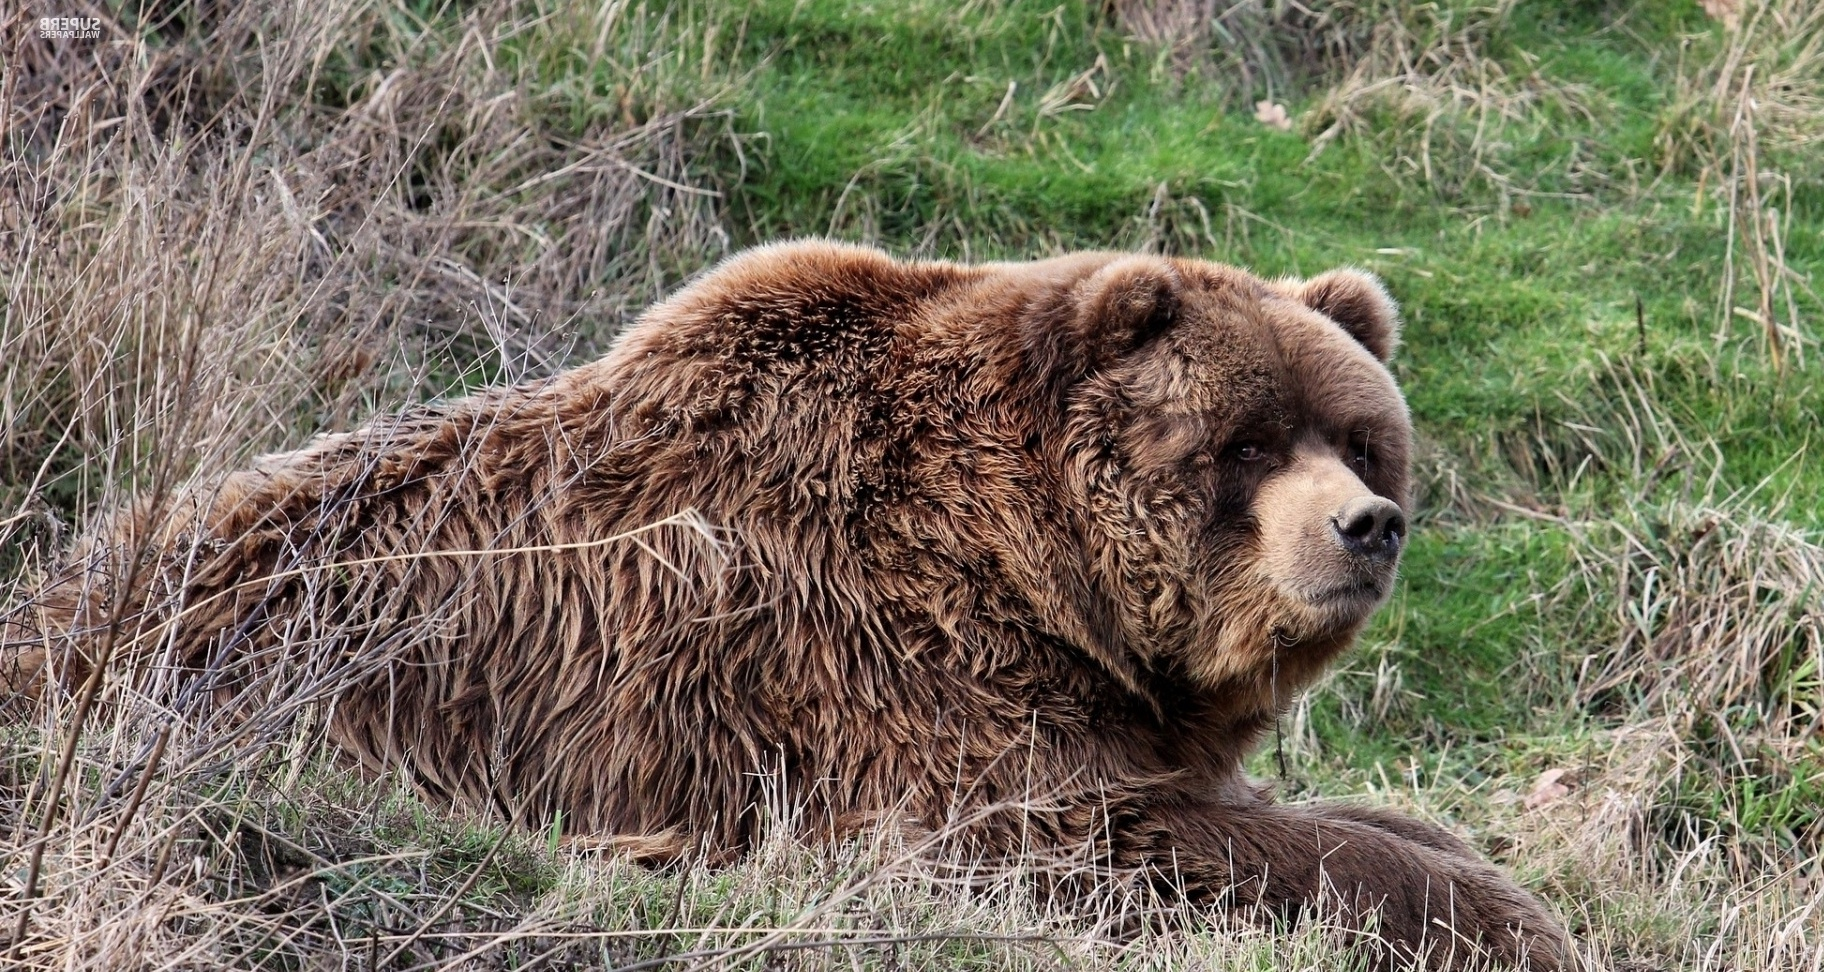 Brown bear wallpaper - Animal wallpapers - #45445